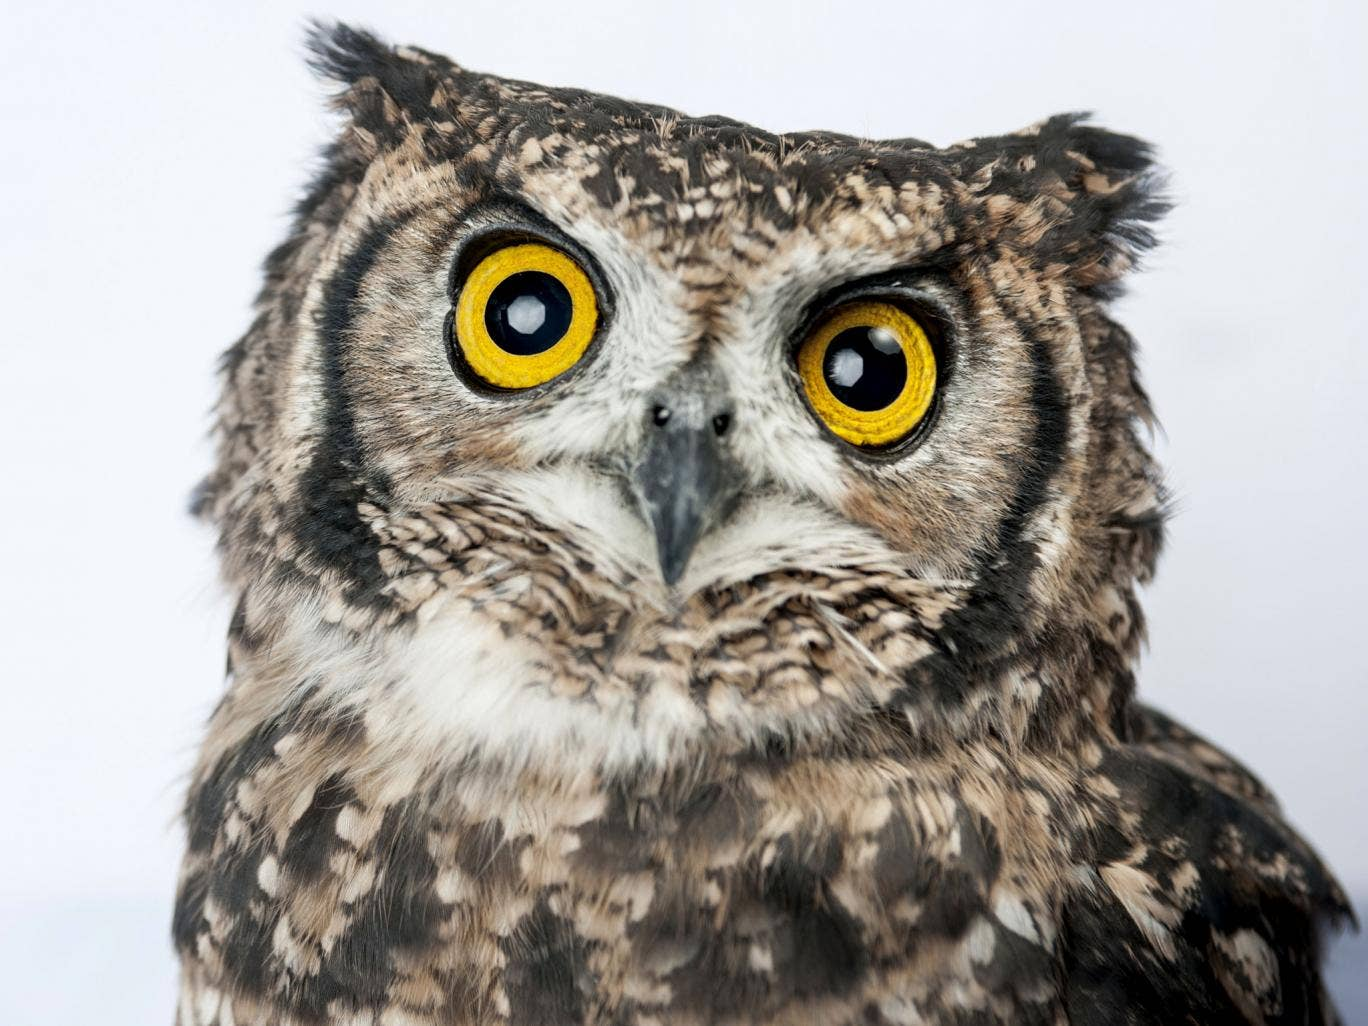 An owl sits on display at Tori-no Iru Cafe on February 23, 2014 in Tokyo, Japan. Located in Kiba, Tokyo, Tori-no Iru (Birds Cafe) is a cafe where people can get up close and interact with some exotic birds. Japan has an increasing number of pet cafes, whe